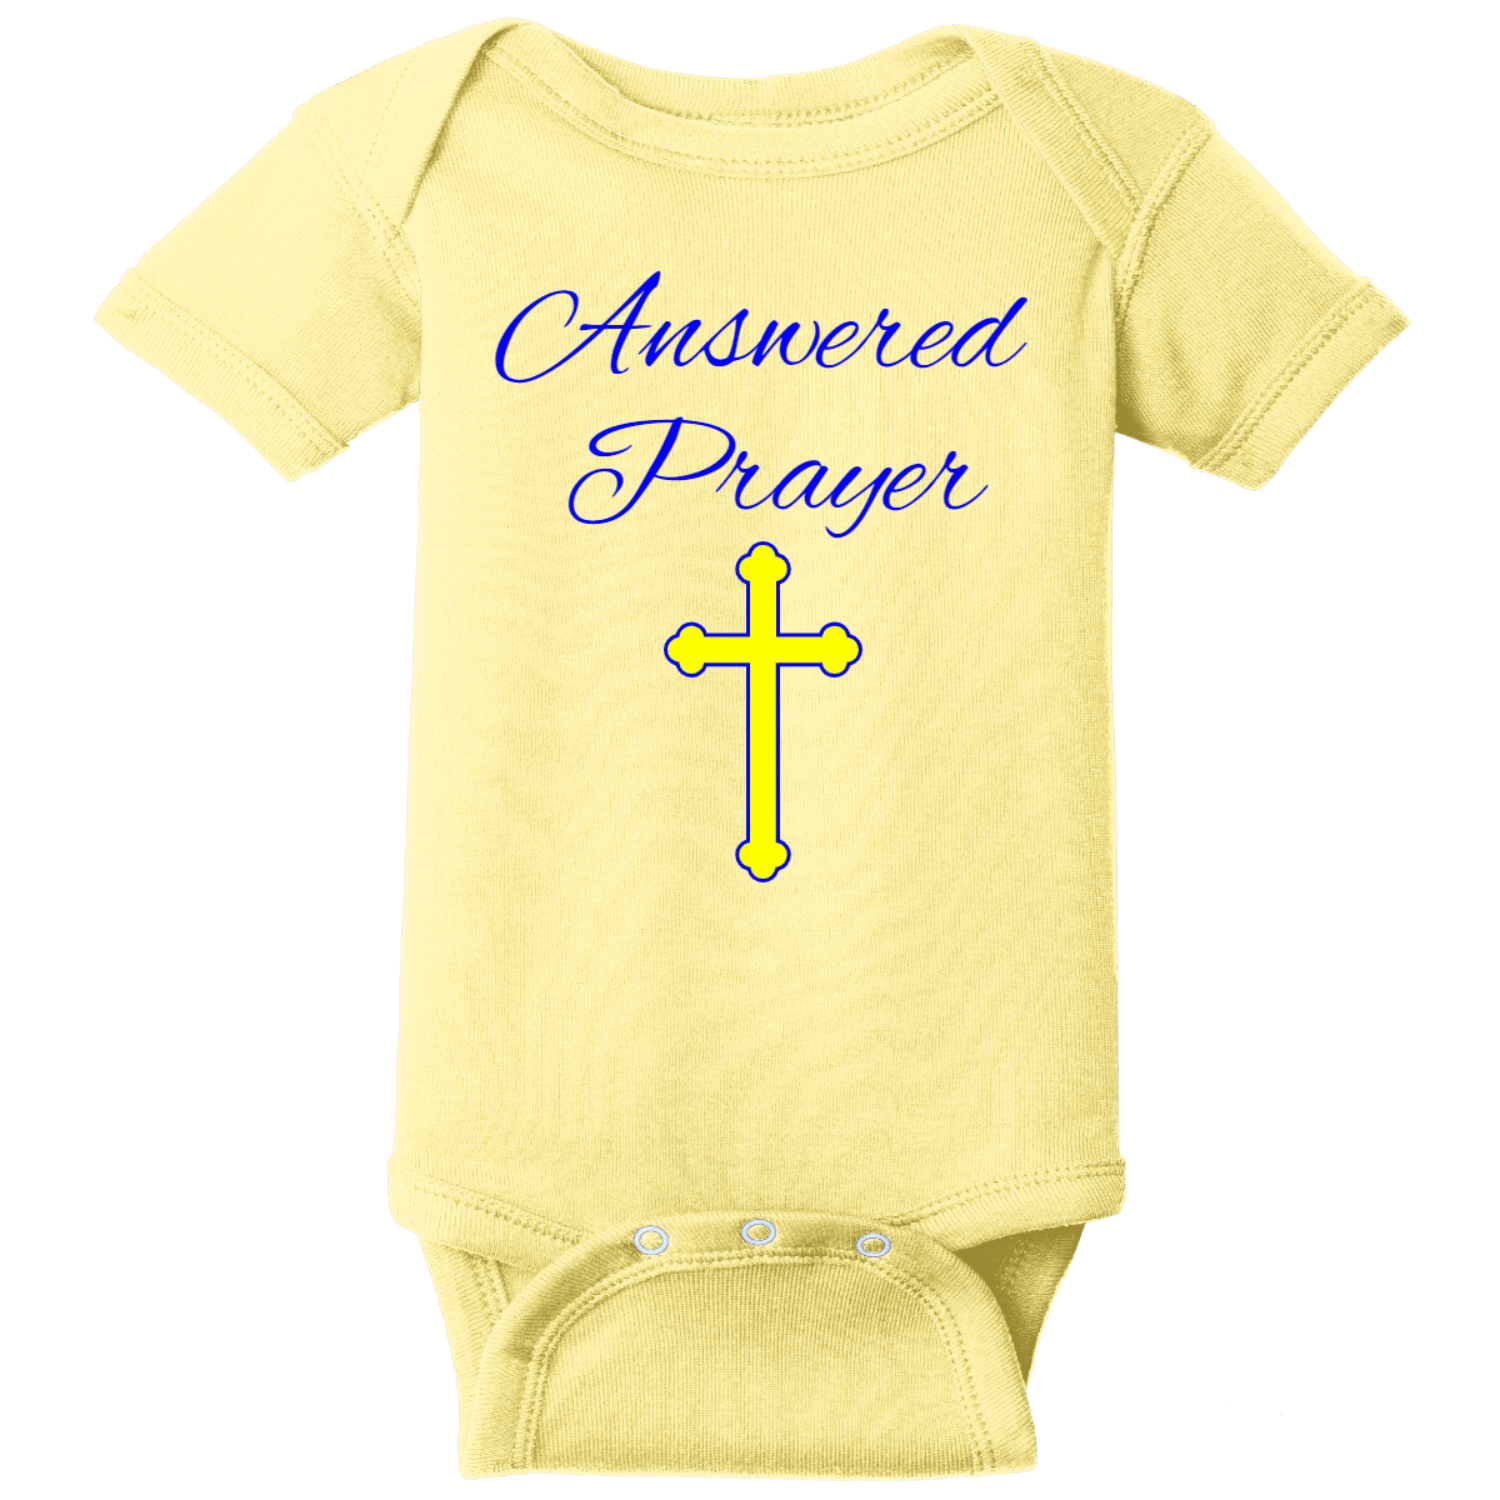 Prayer Answered Infant Onsie Banana Rabbit Skins Infant Short Sleeve Infant Rib Bodysuit RS4400